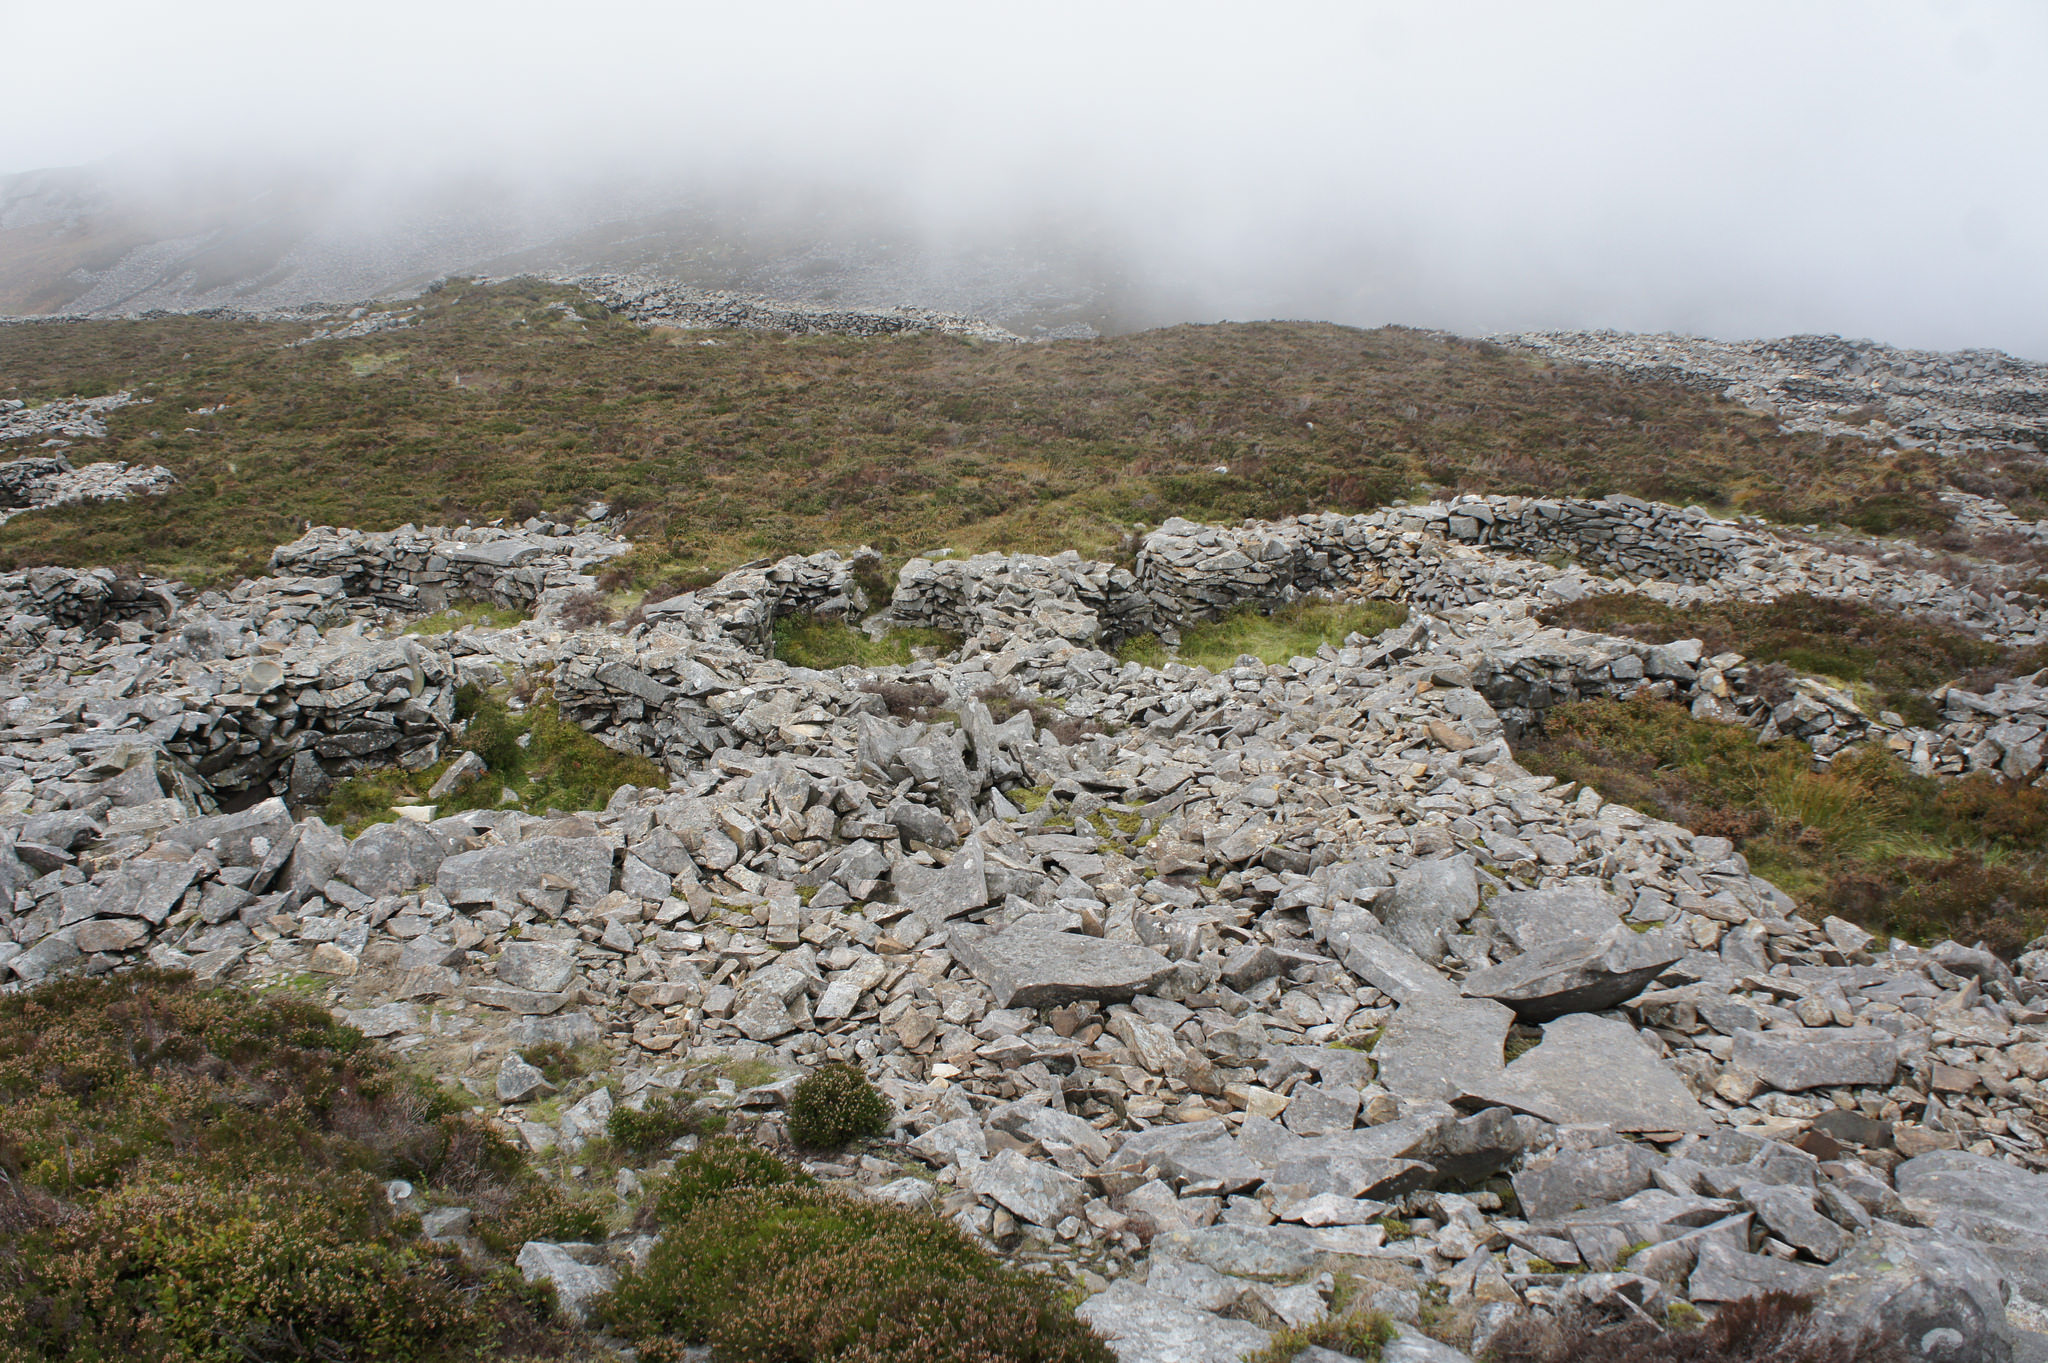 Tre'r Ceiri (Town of the Giants) on the Llŷn Peninsula. Suggested as a location for Caer Dathl, the court of Math fab Mathonwy in the 4th Branch.